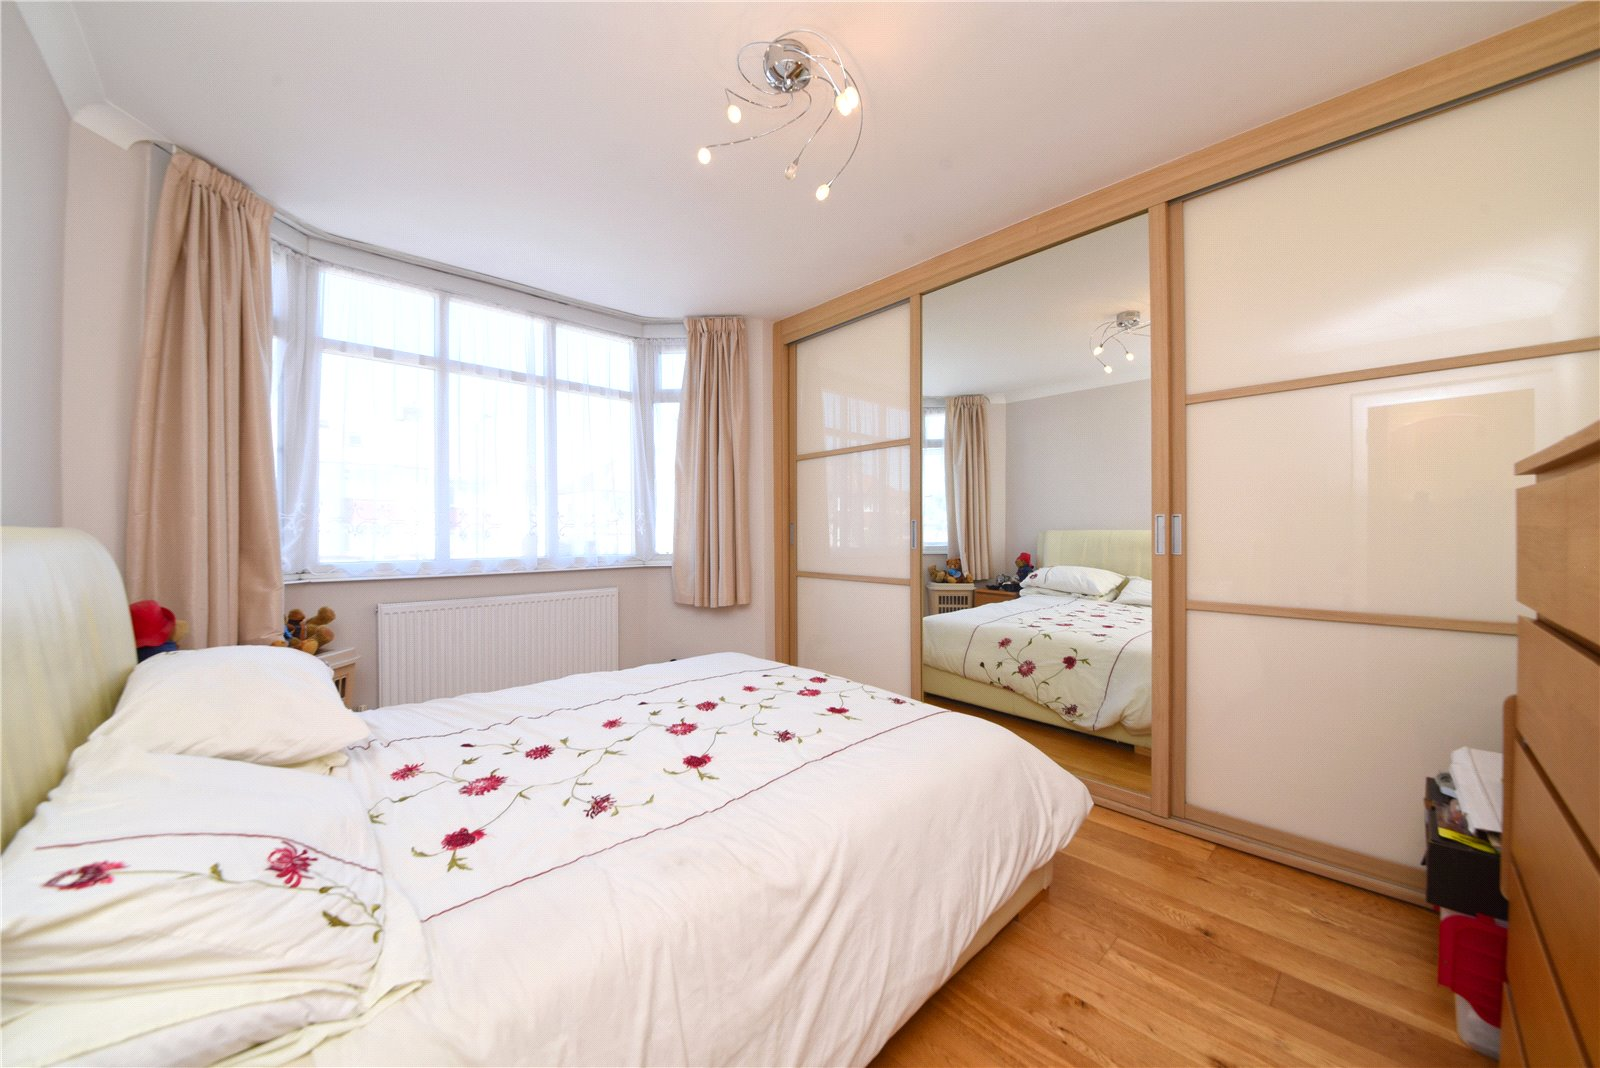 3 bed house for sale in Southgate, N14 4NY  - Property Image 5